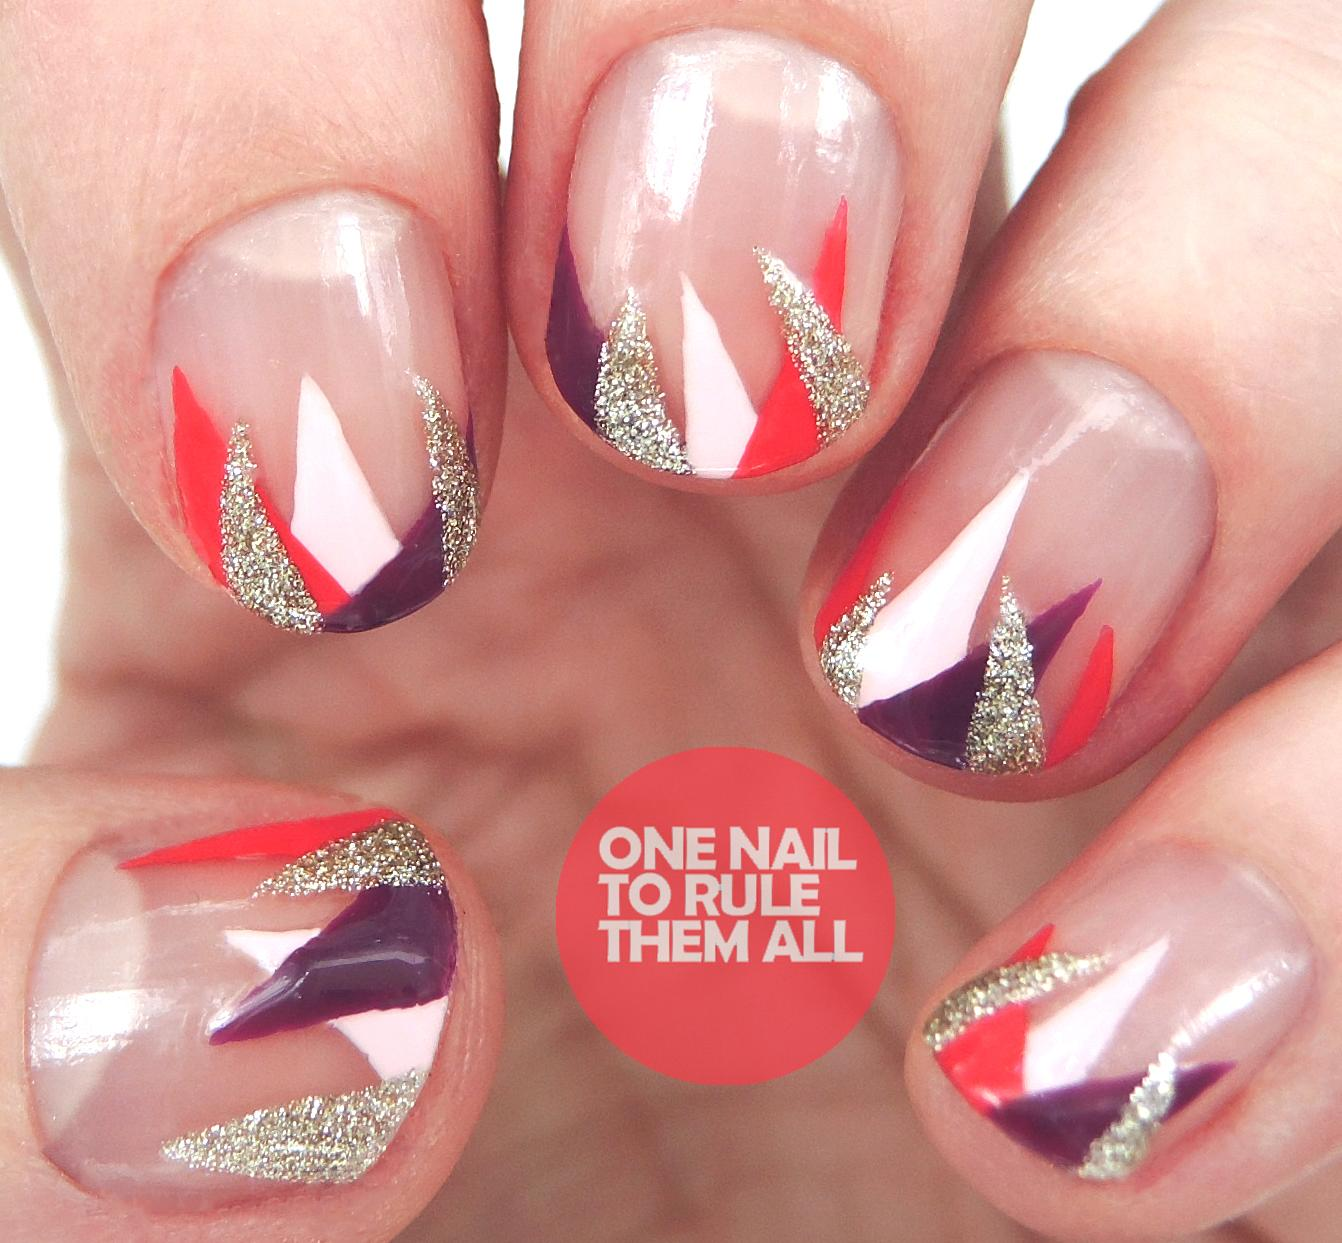 Clear nails featuring triangles of different colors, including gold glitter, white, berry & red